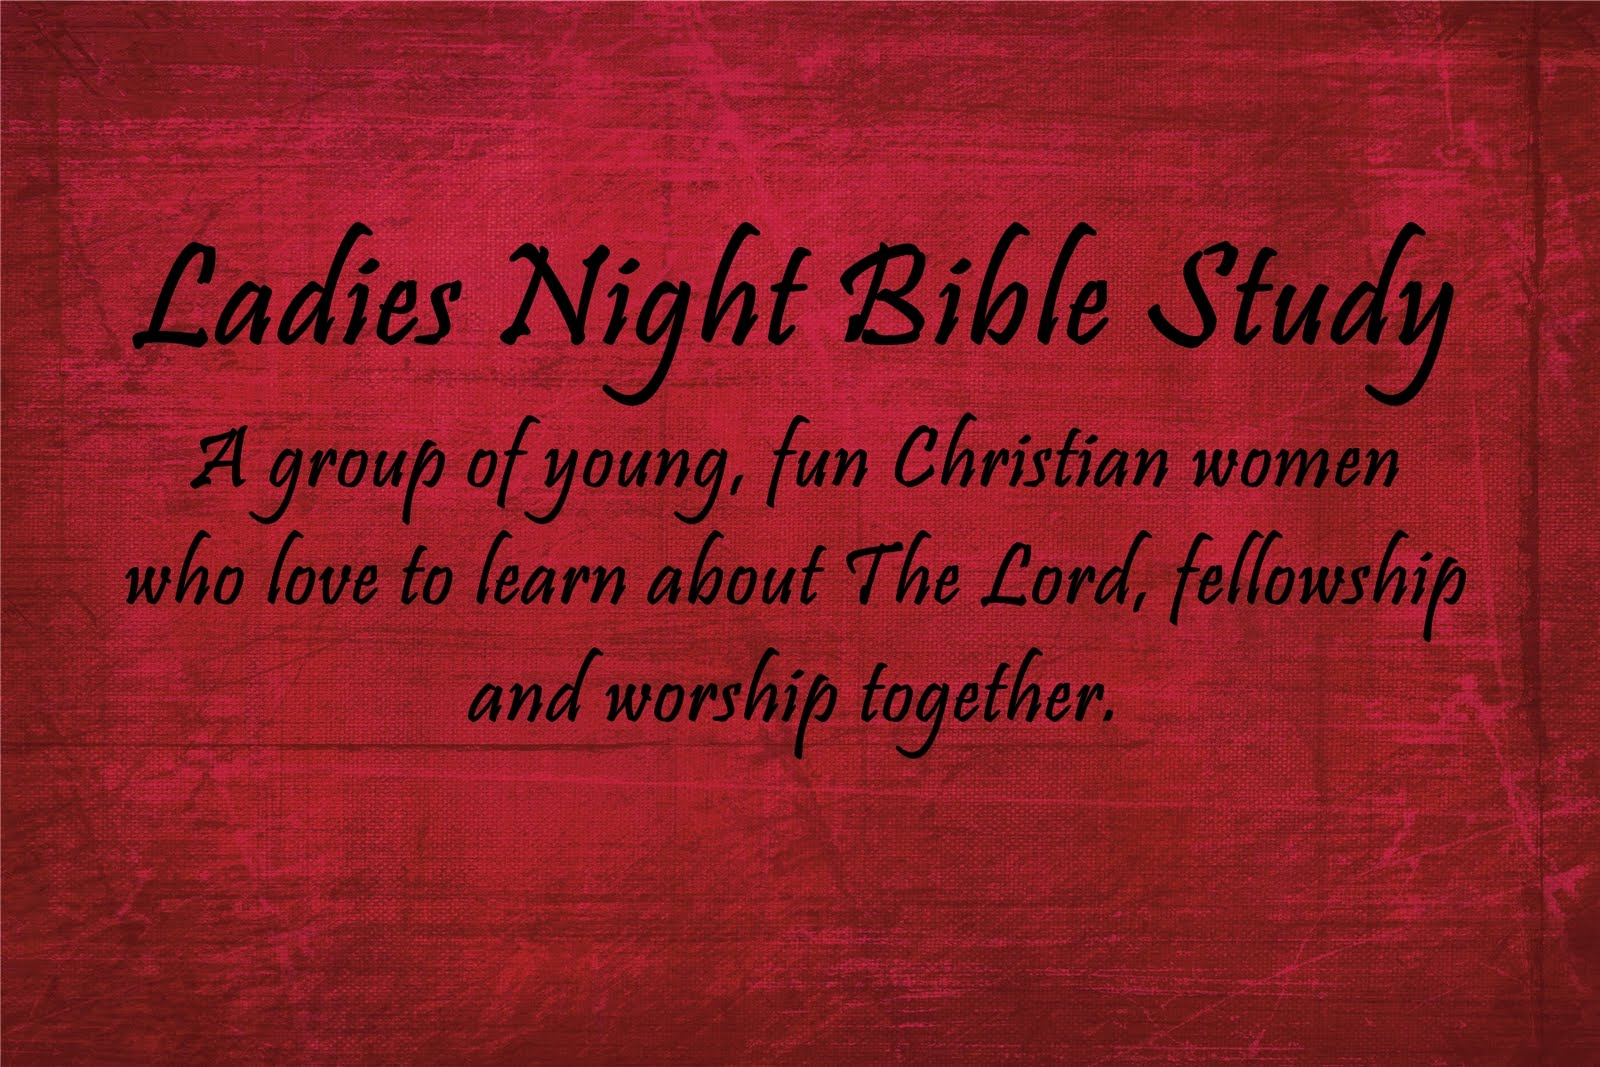 Ladies Night Bible Study